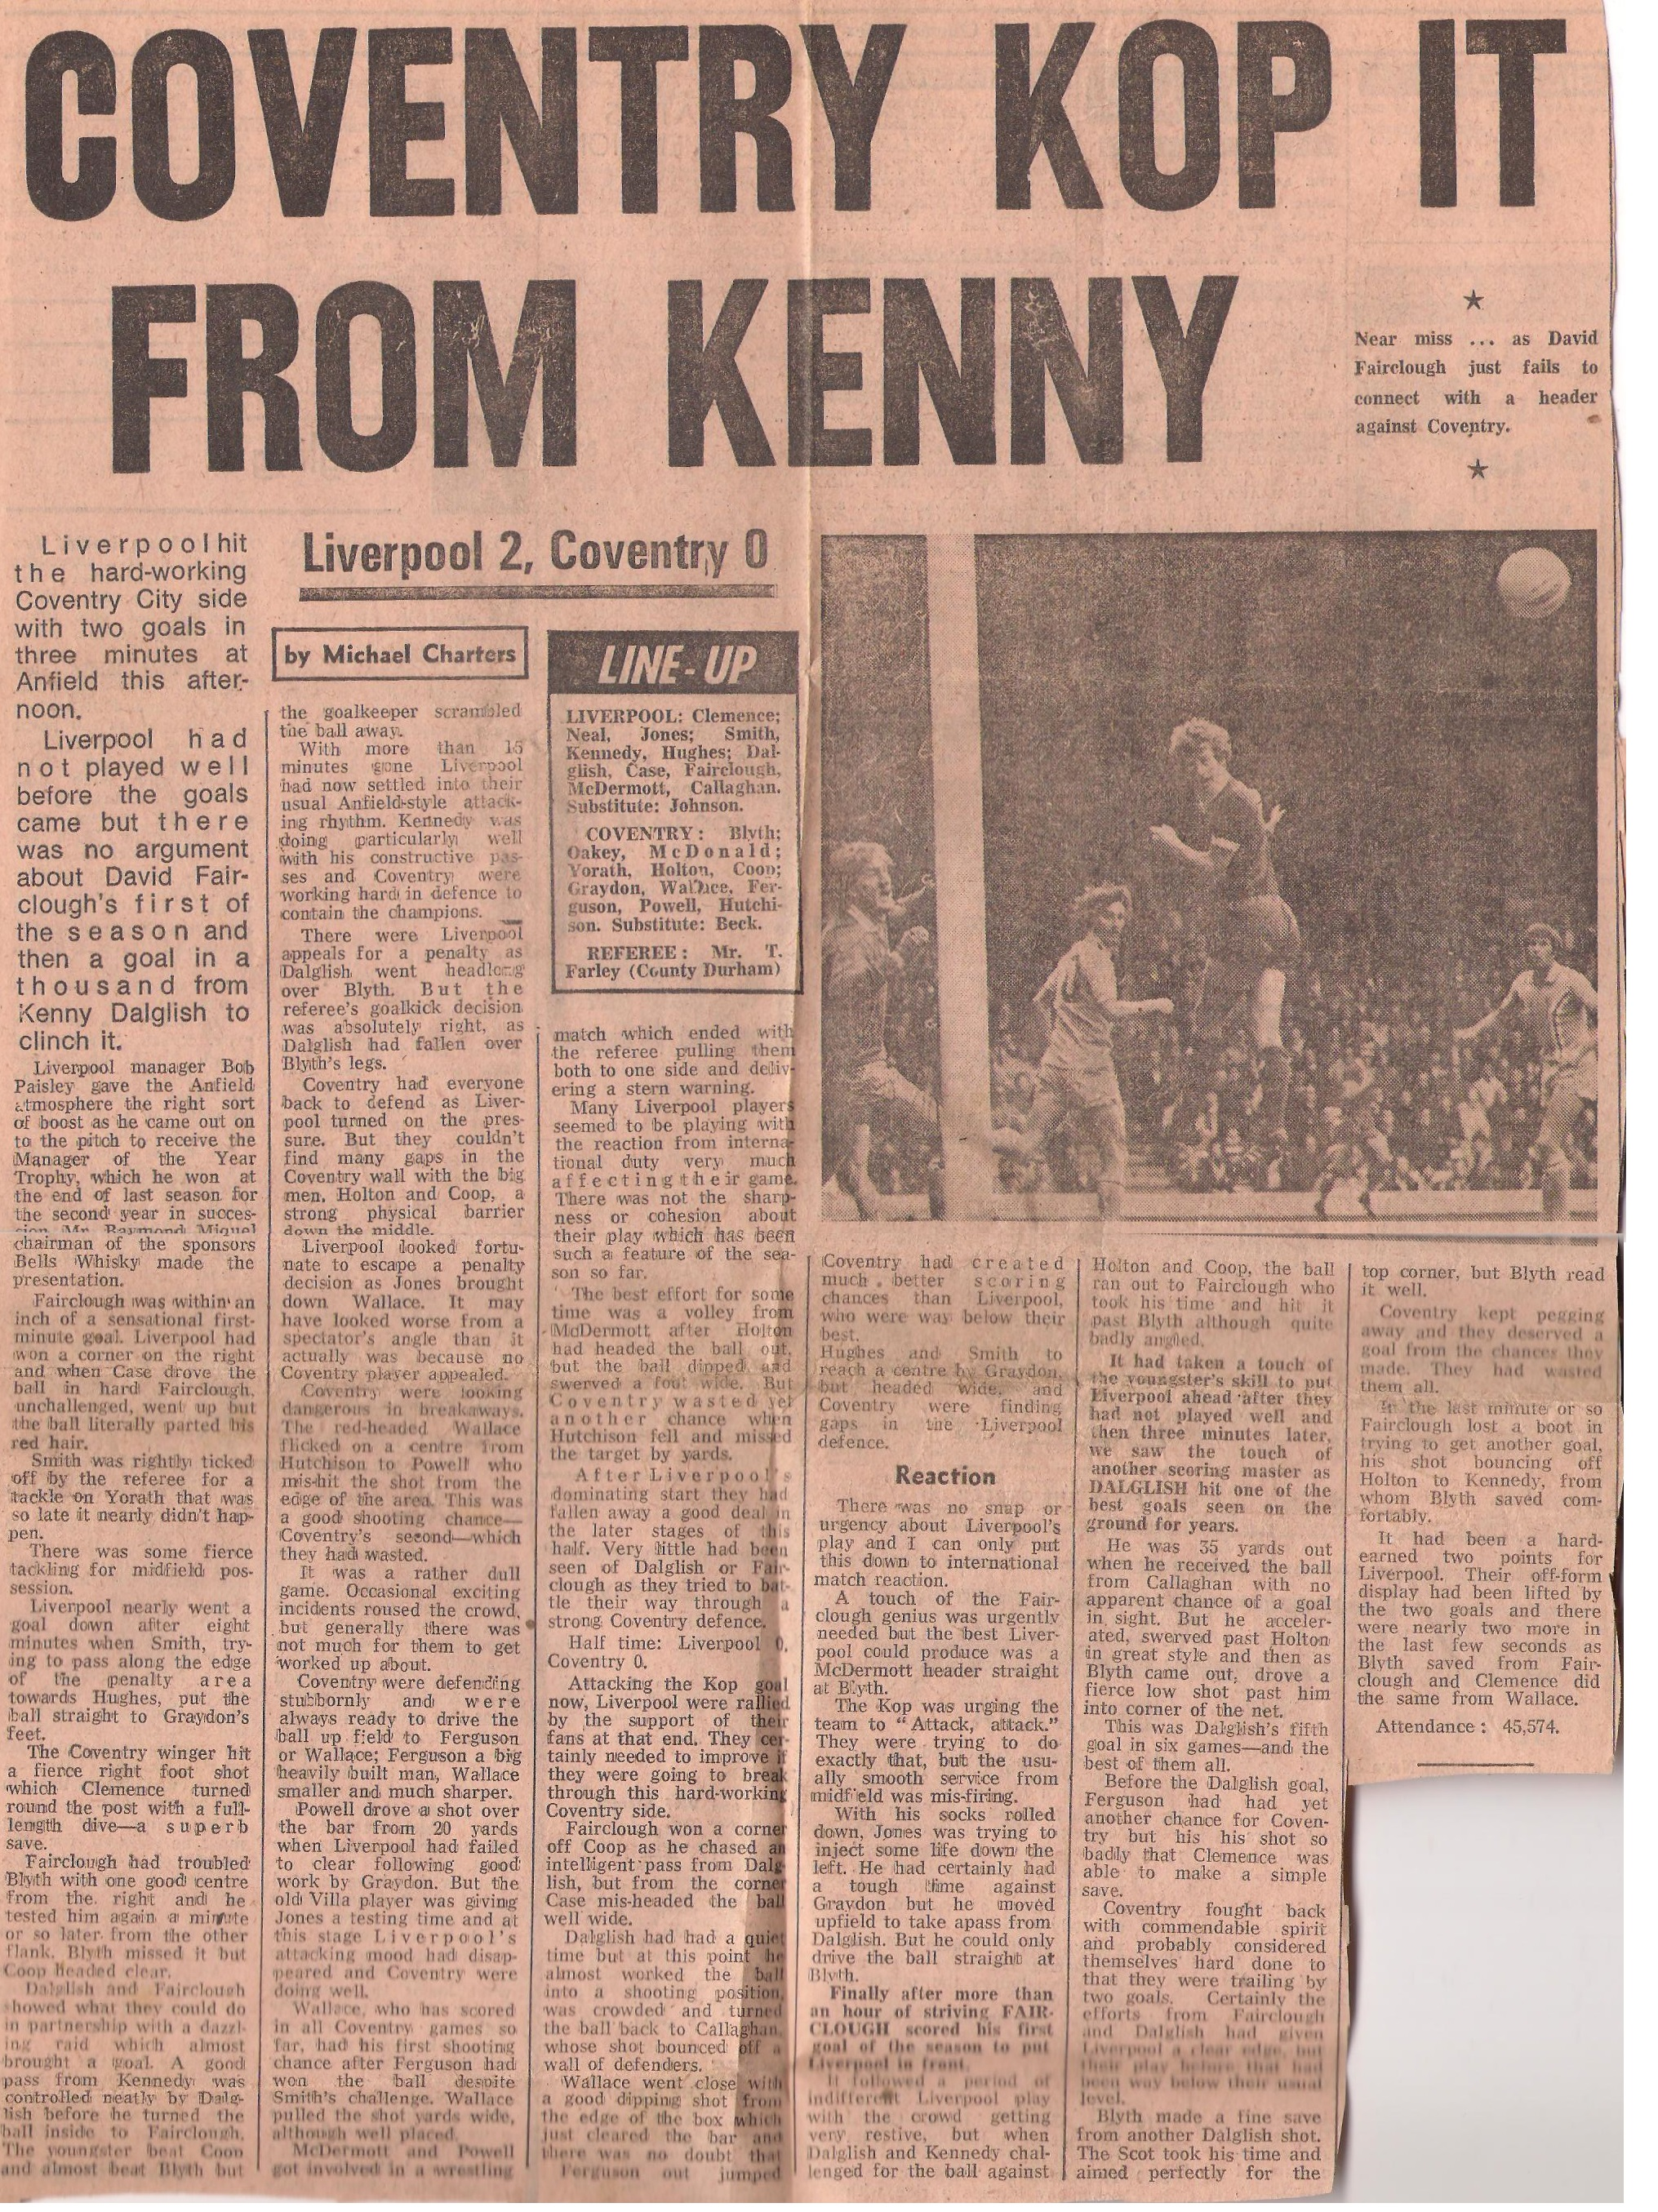 Coventry kop it from Kenny! - 10 September 1977